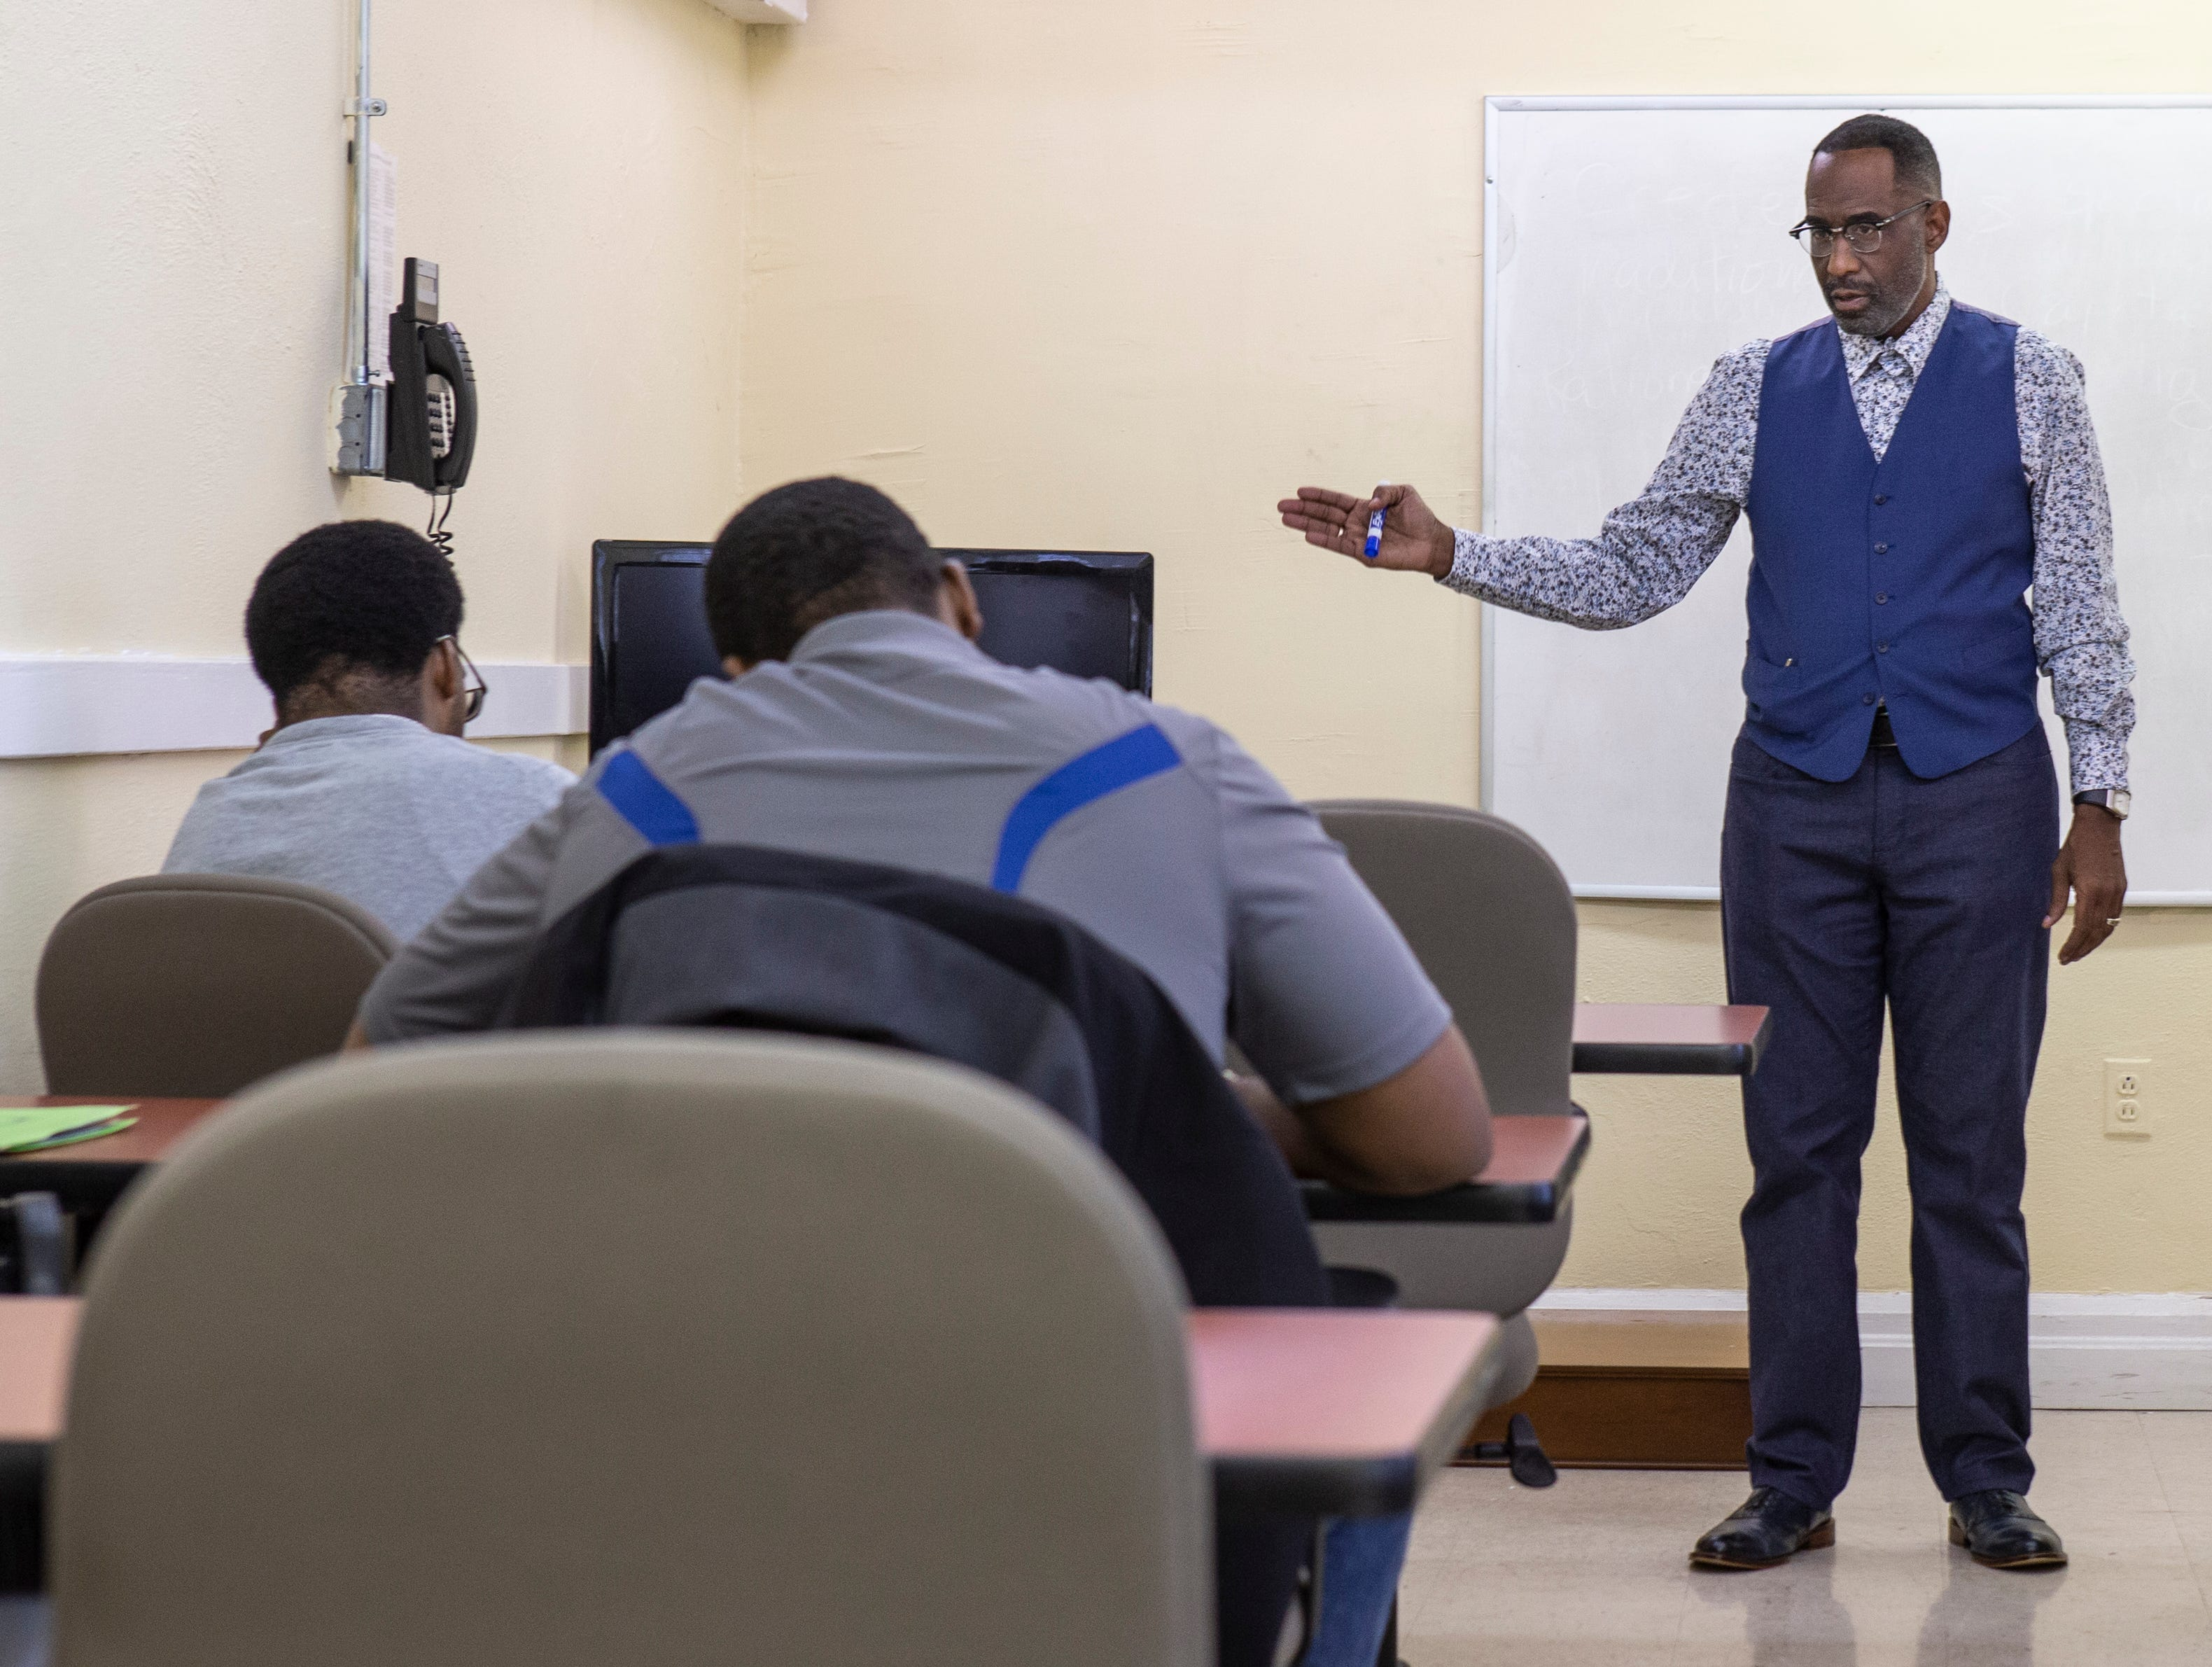 The Rev. Kevin Cosby is seen teaching a class at Simmons College of Kentucky. Nov. 20, 2018.